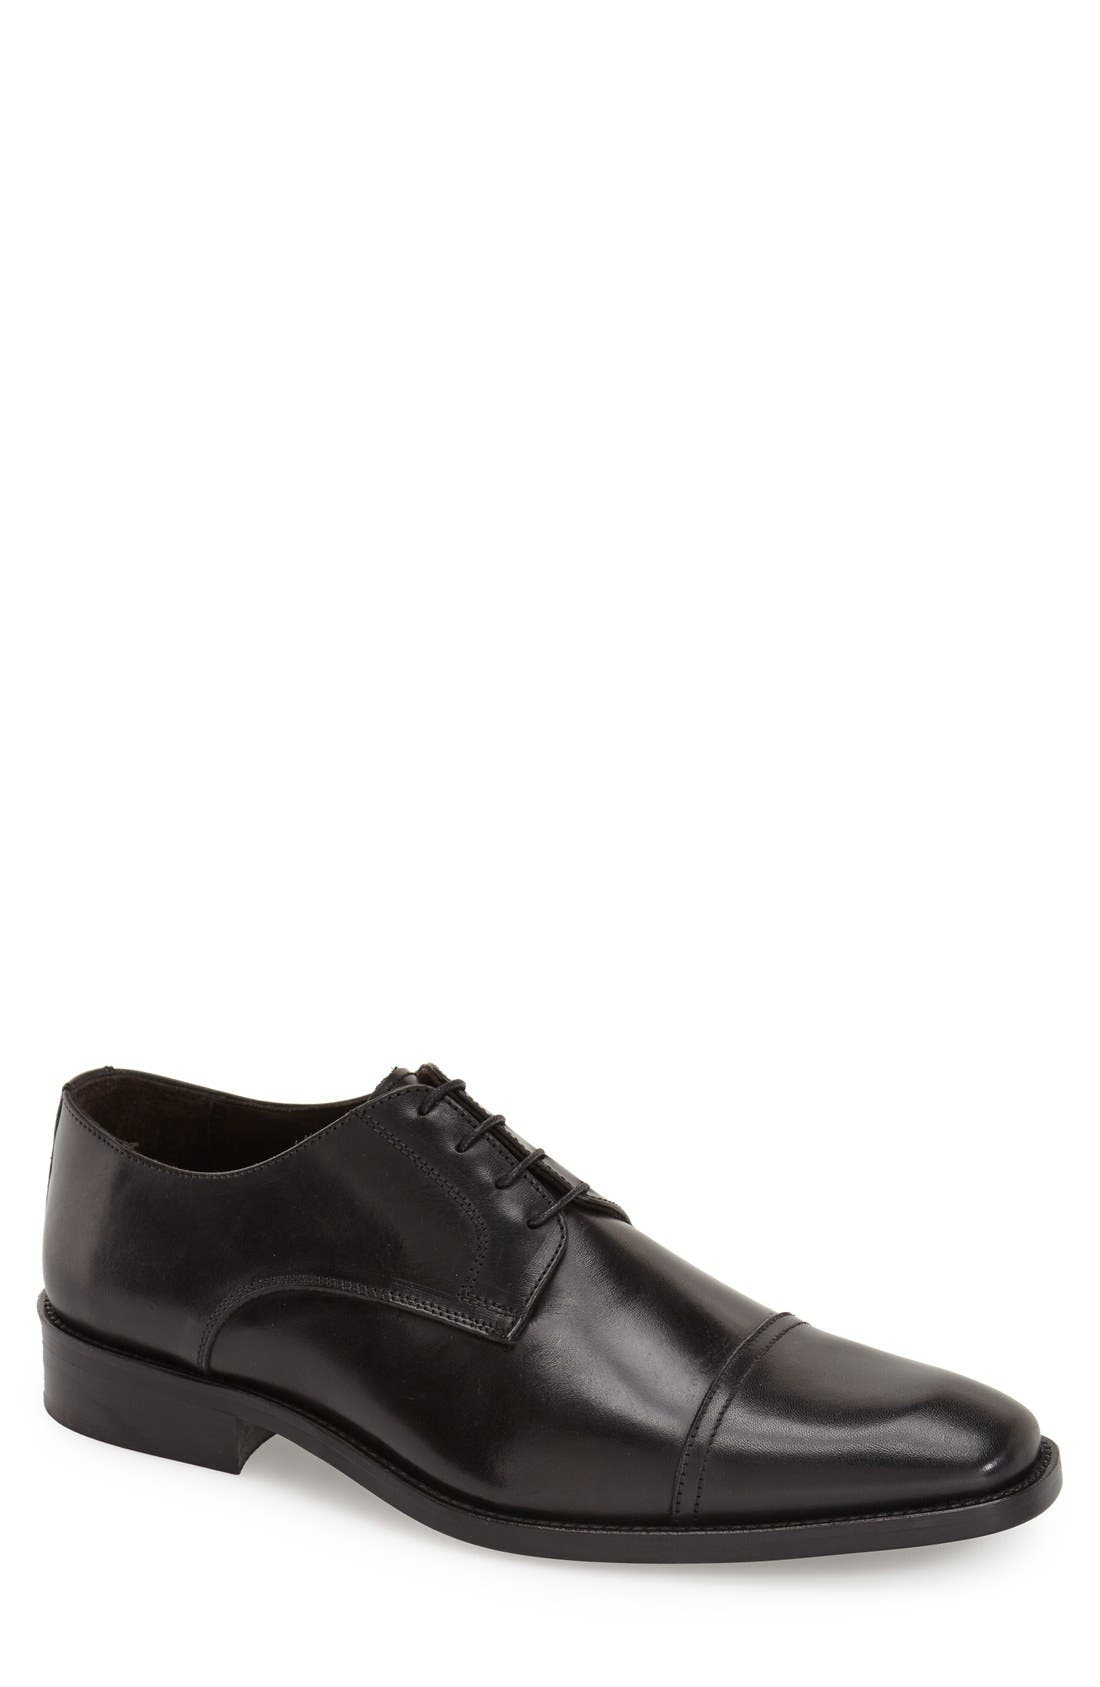 Alternate Image 1 Selected - To Boot New York 'Maxwell' Cap Toe Derby (Men)